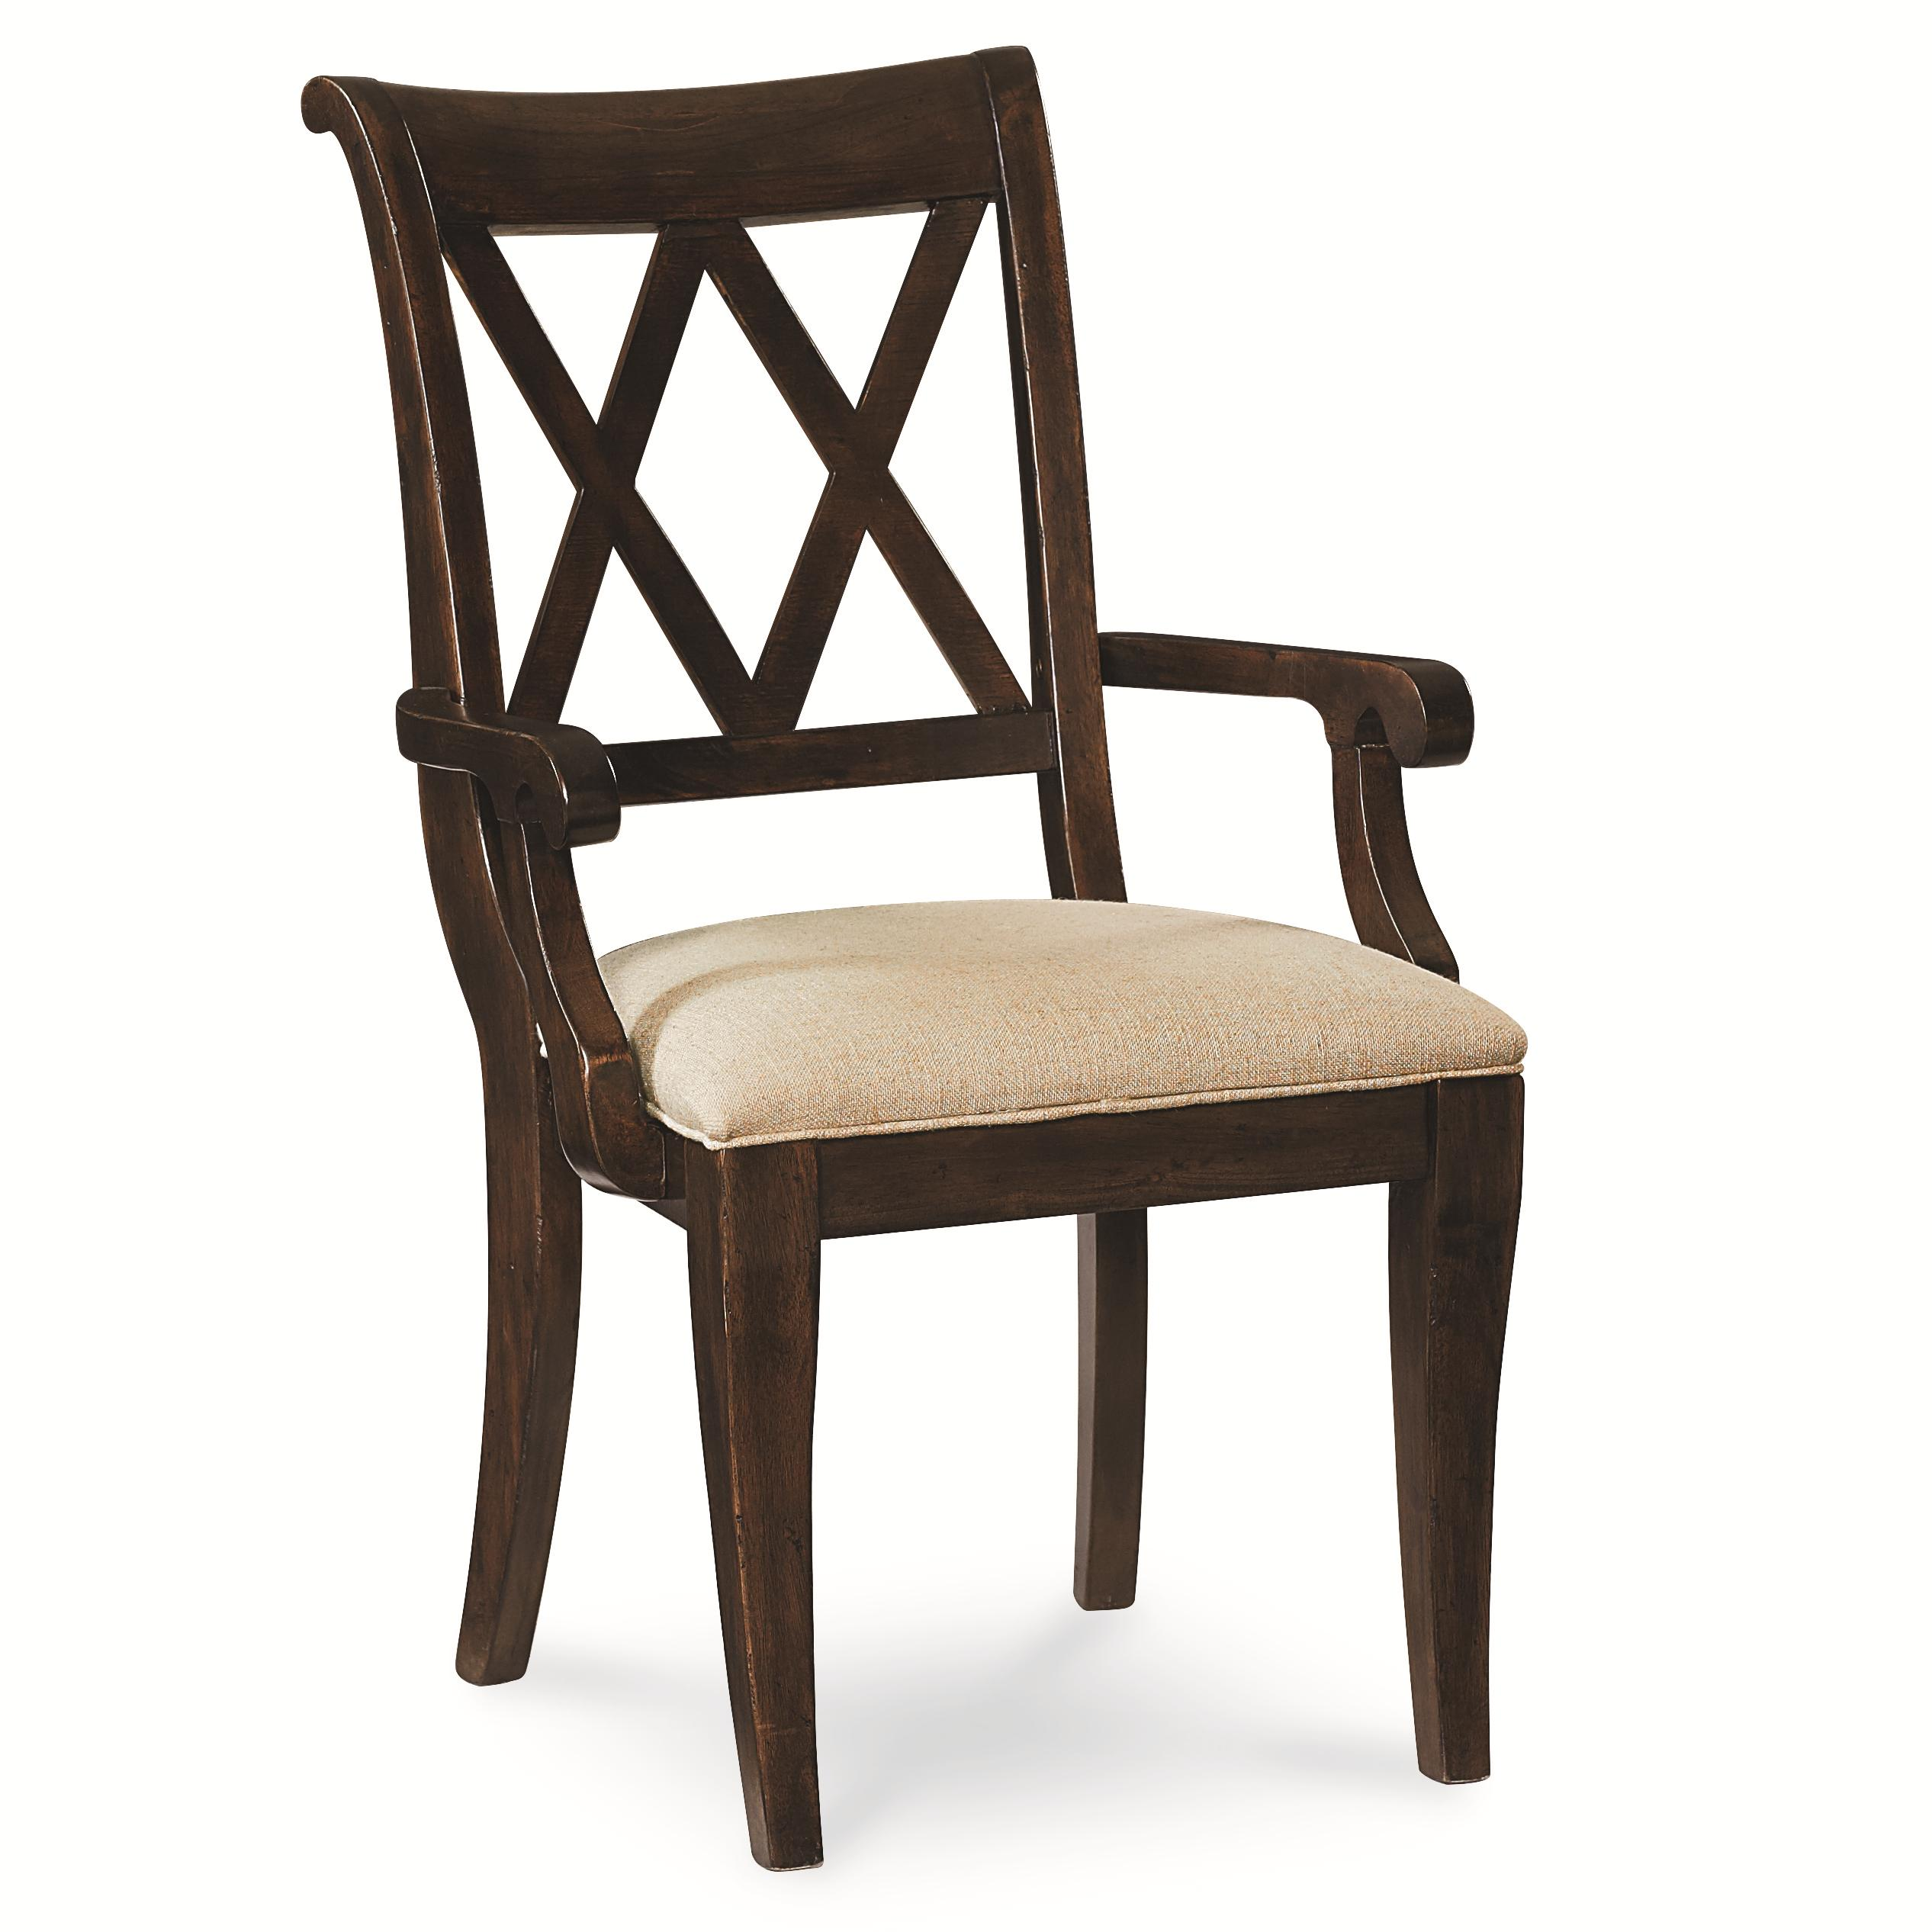 Legacy classic thatcher x back arm chair with tapered legs for Legacy classic dining room furniture